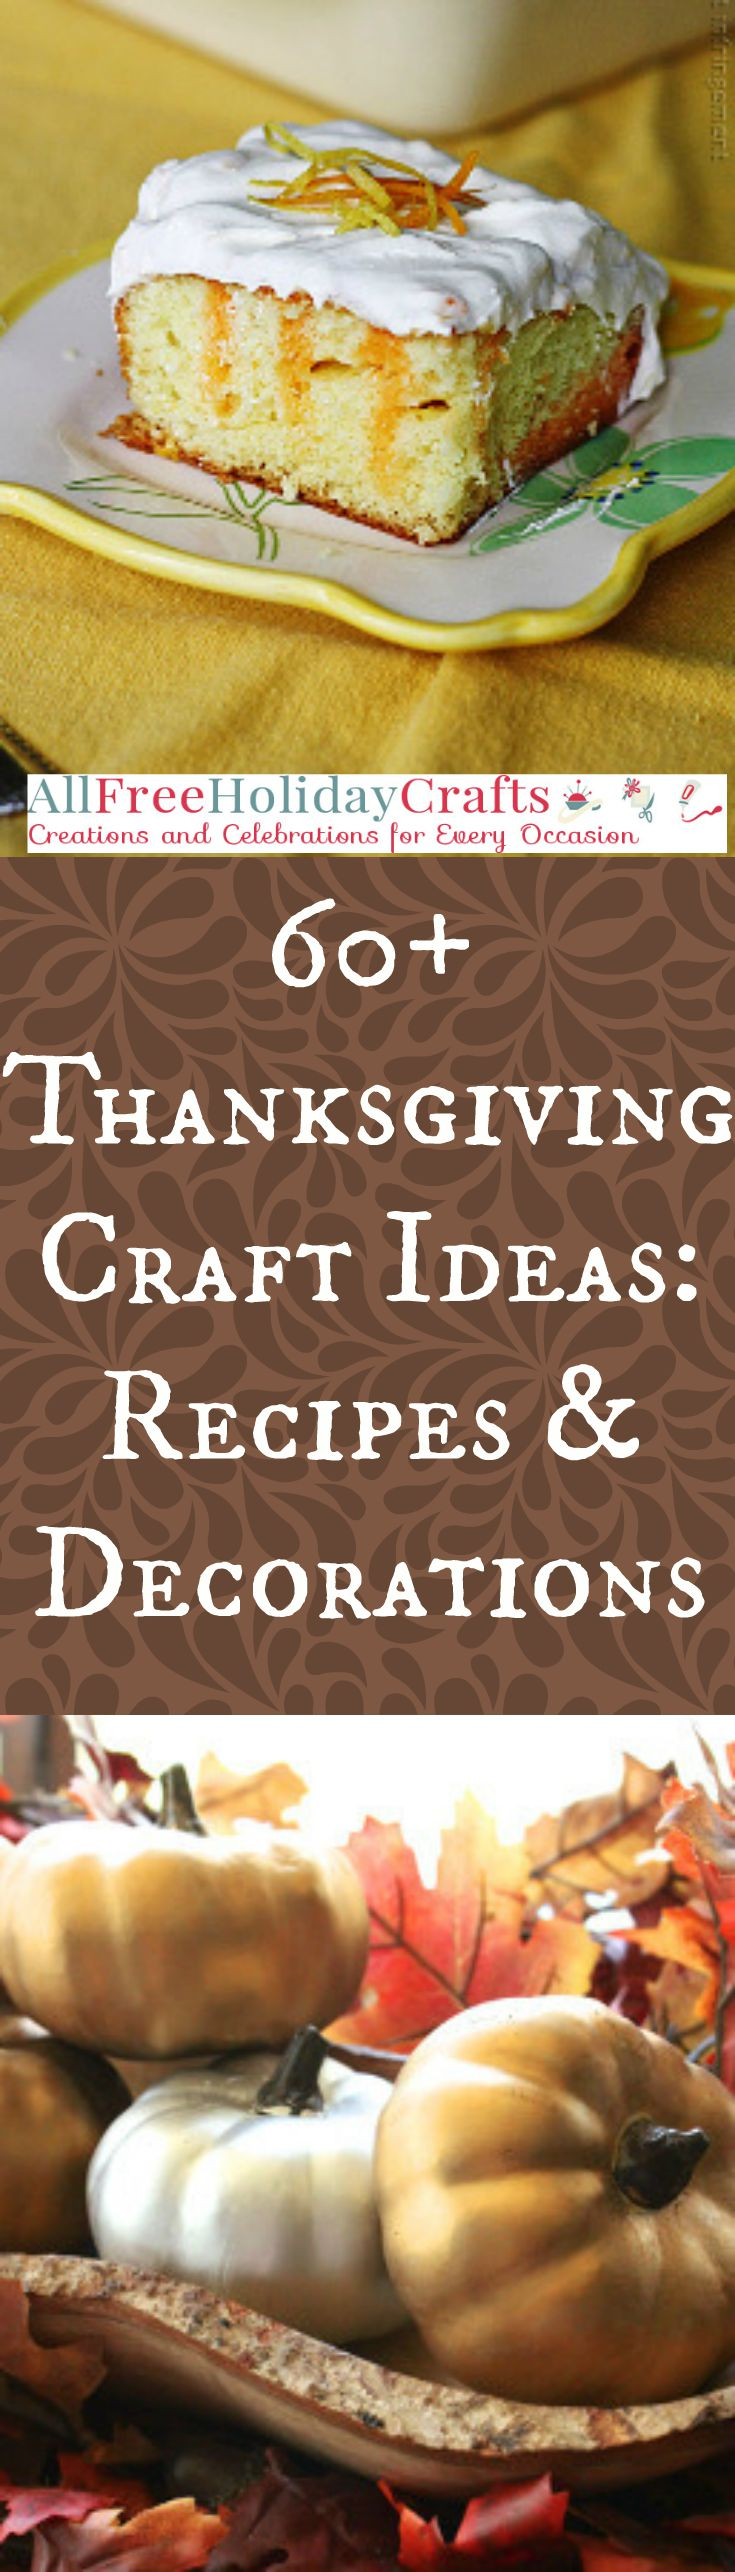 You can plan your entire day with our collection of Thanksgiving Craft Ideas: 60+ Thanksgiving Recipes and Thanksgiving Decoration Ideas. You will find the perfect easy Thanksgiving crafts that will make your holiday a lot easier.